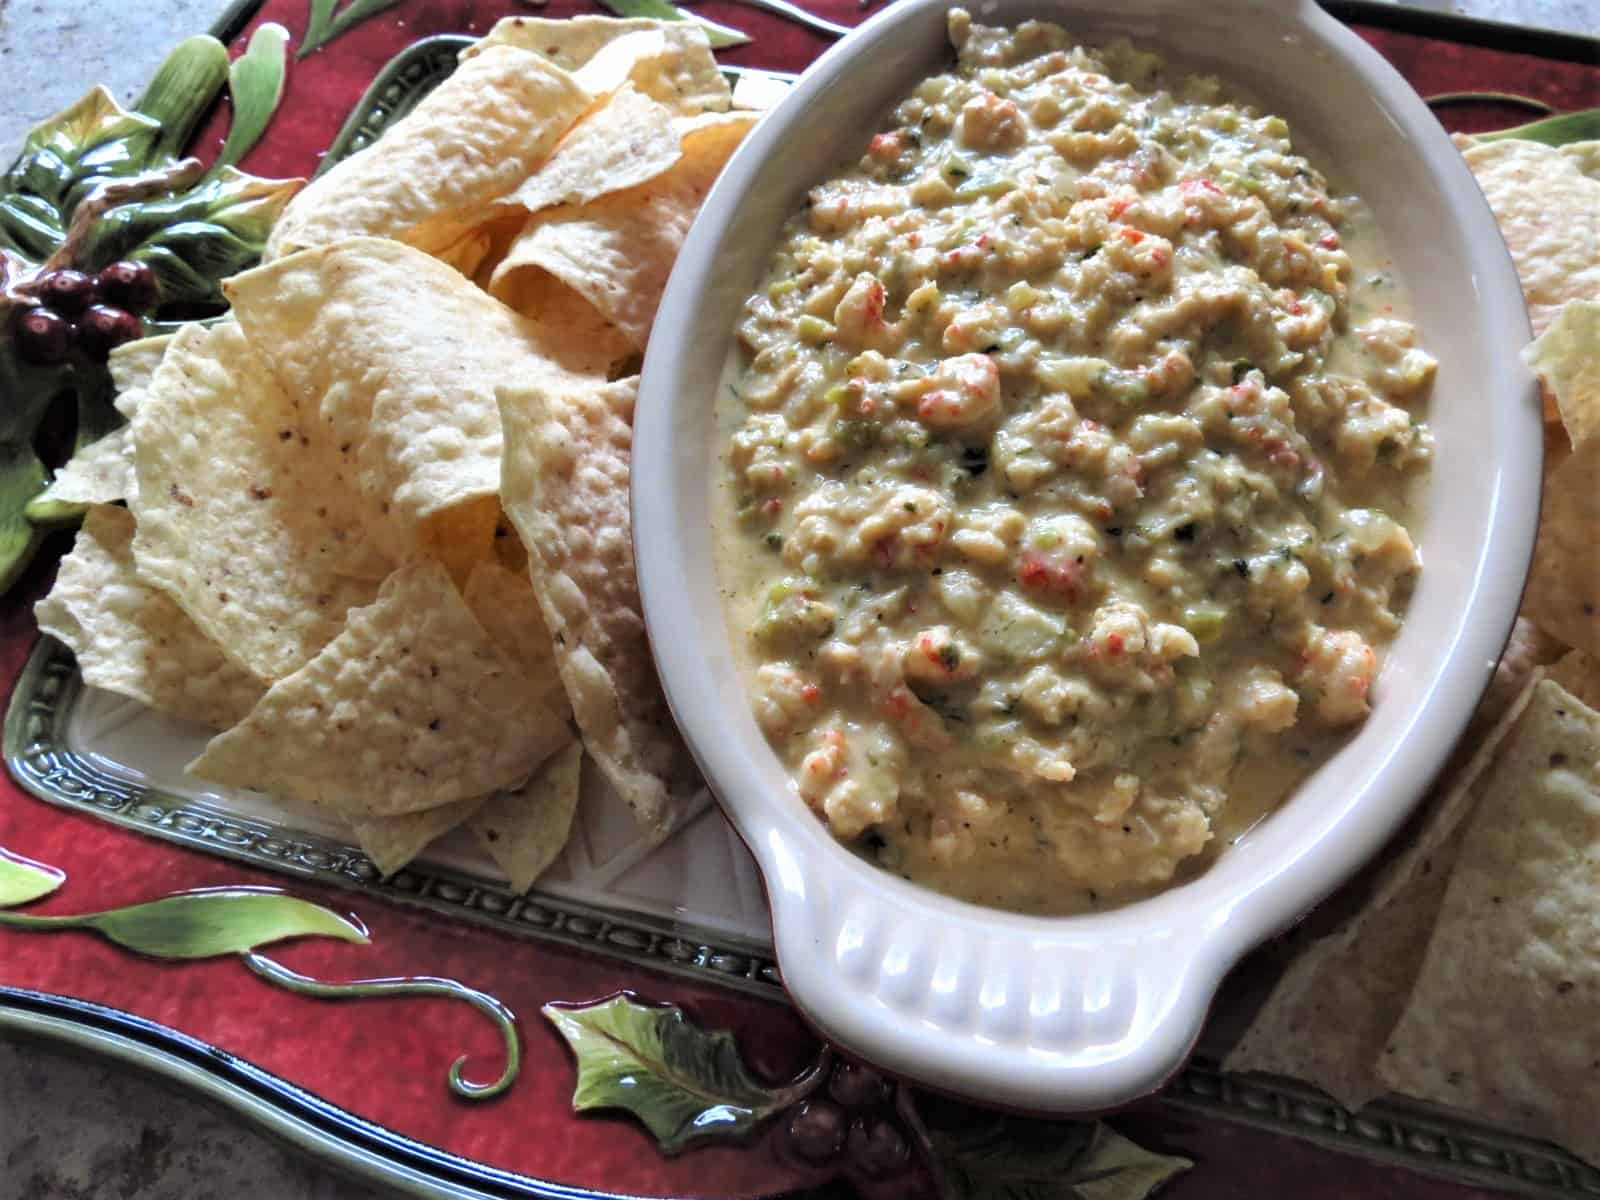 Chunky Cheesy Creamy Crawfish Dip